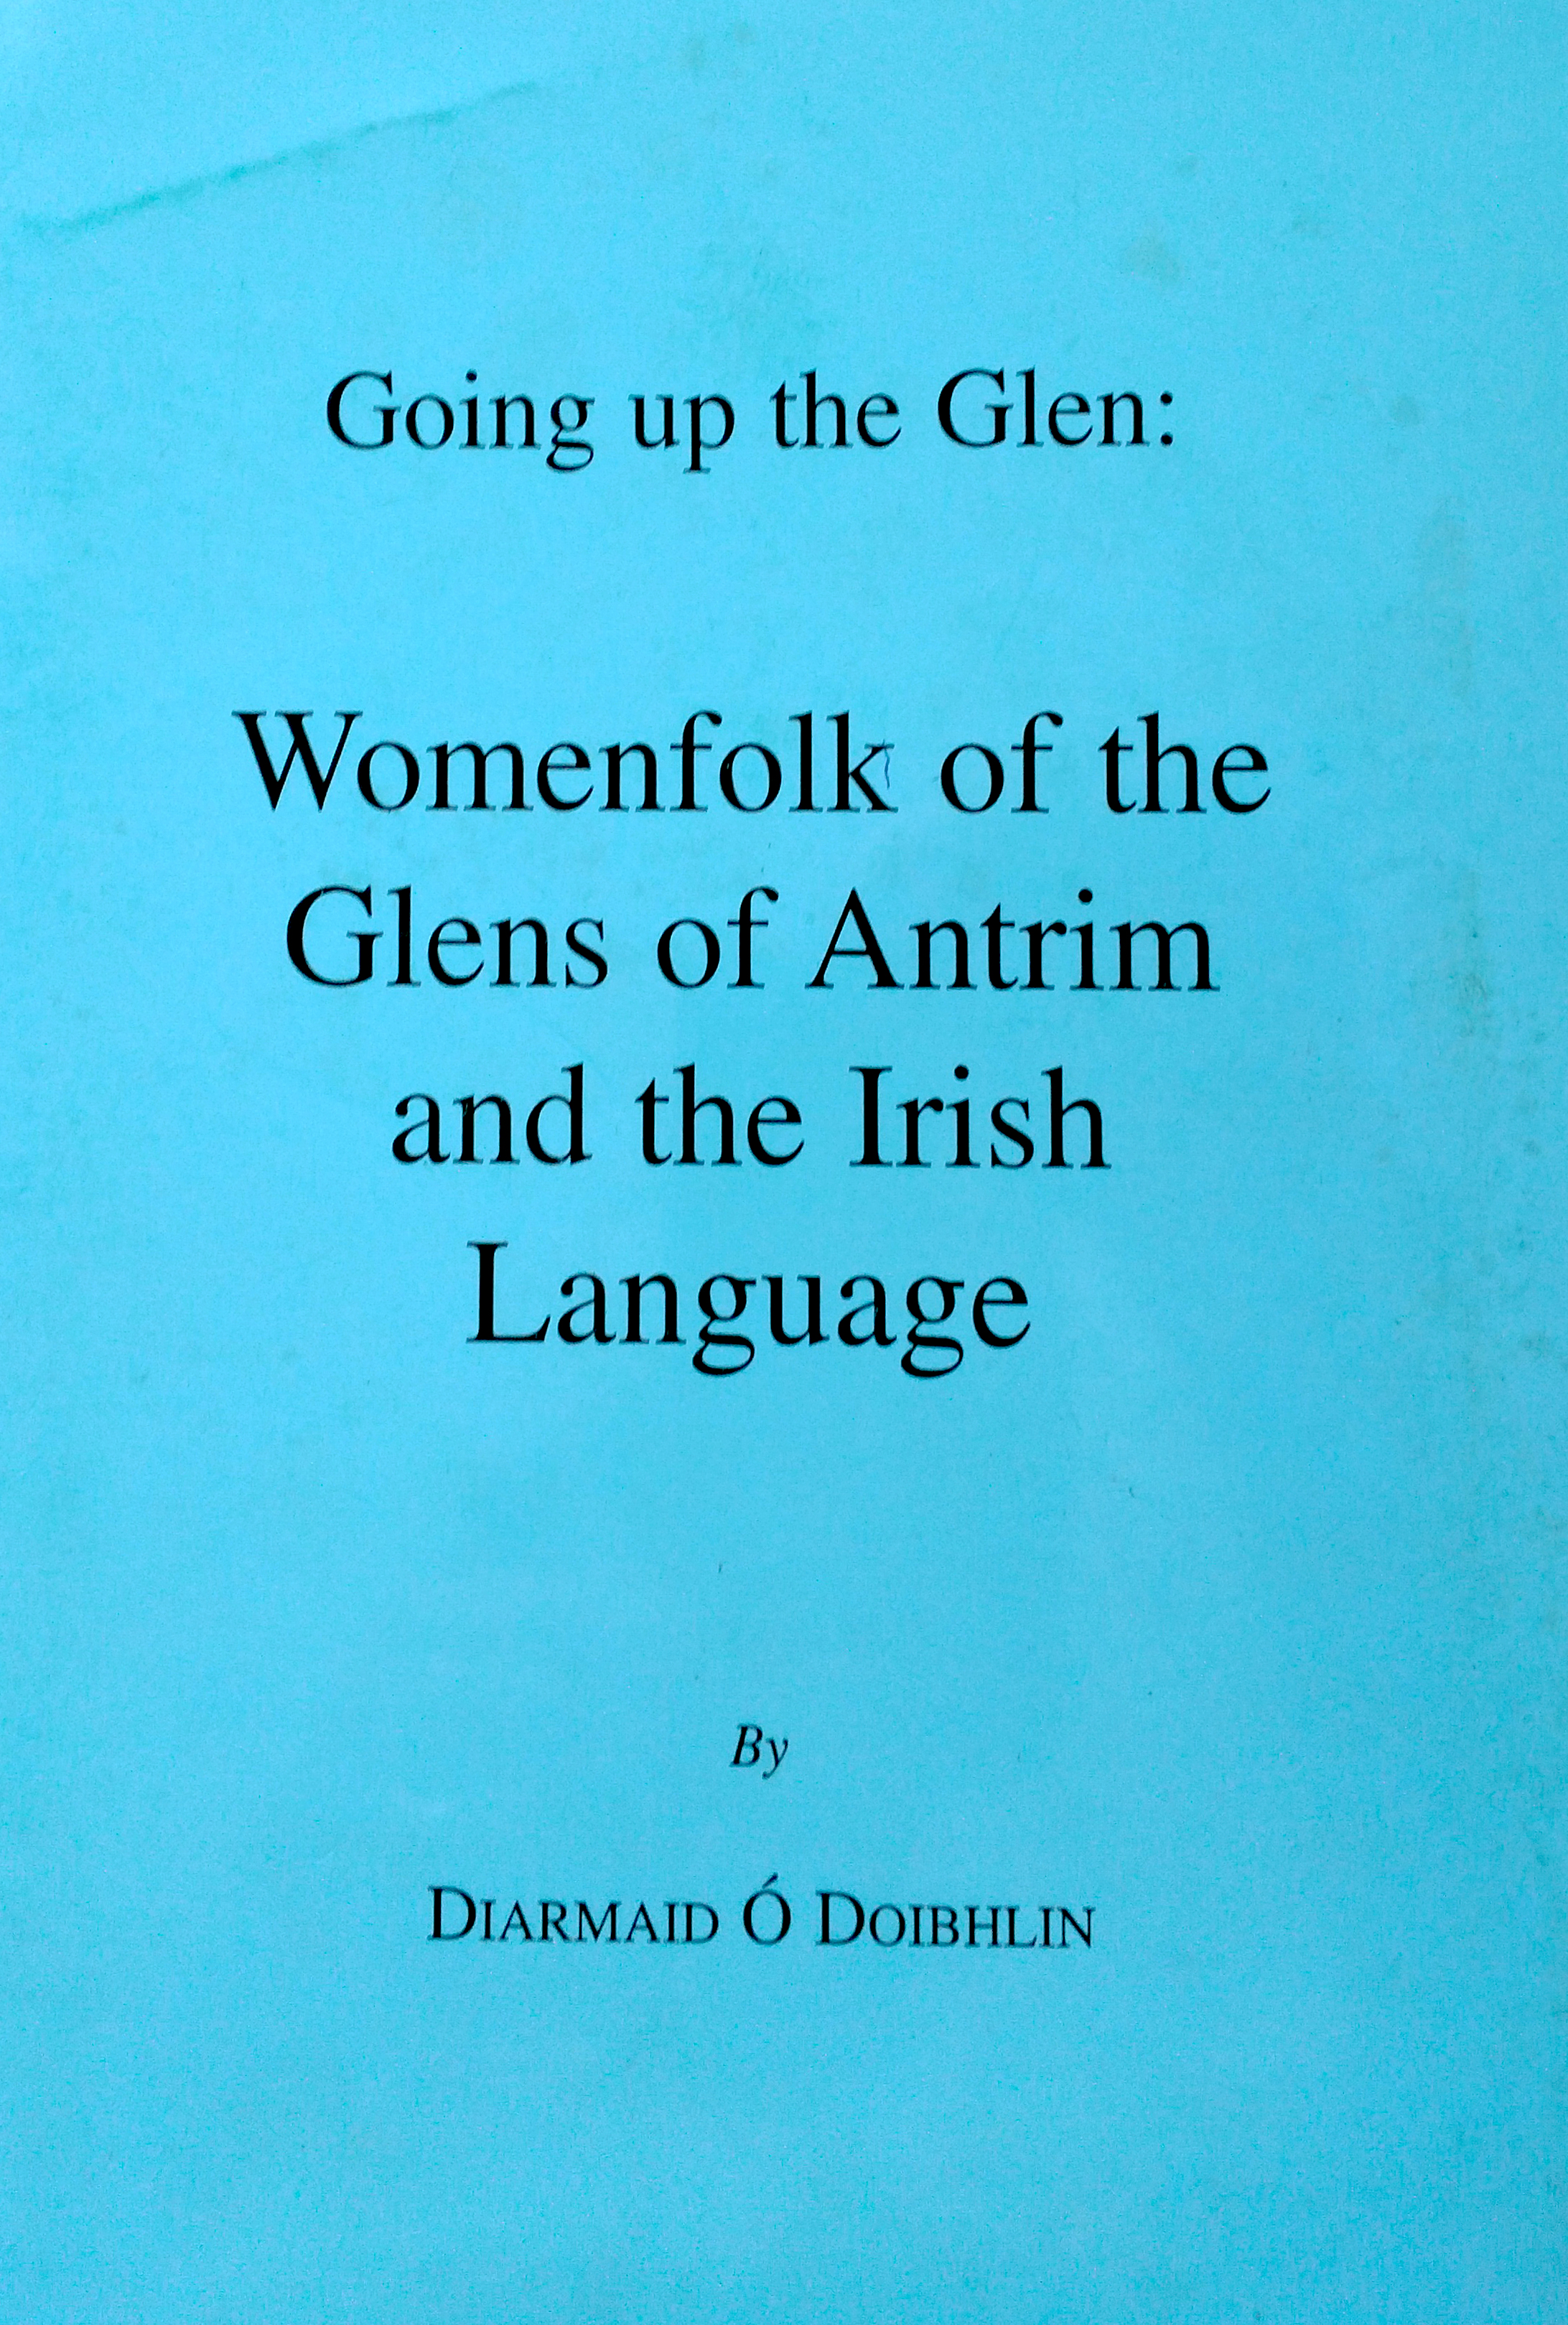 Womenfolk of the Glens